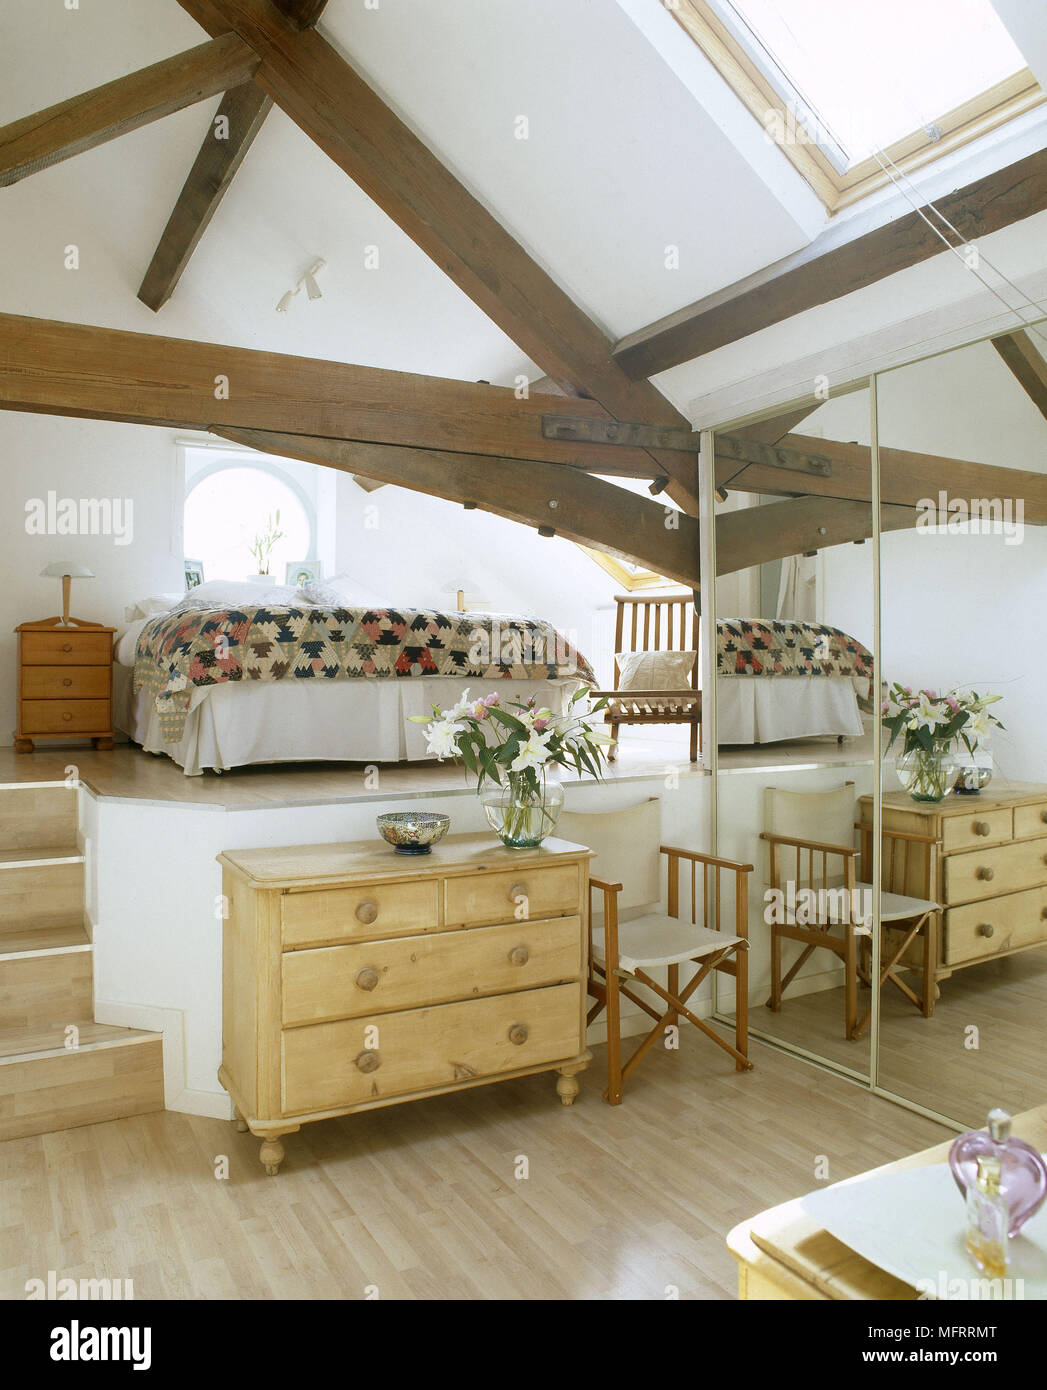 A Modern Country Style Split Level Bedroom With Exposed Beams Bed Pine  Chest Of Drawers Mirrored Wardrobes